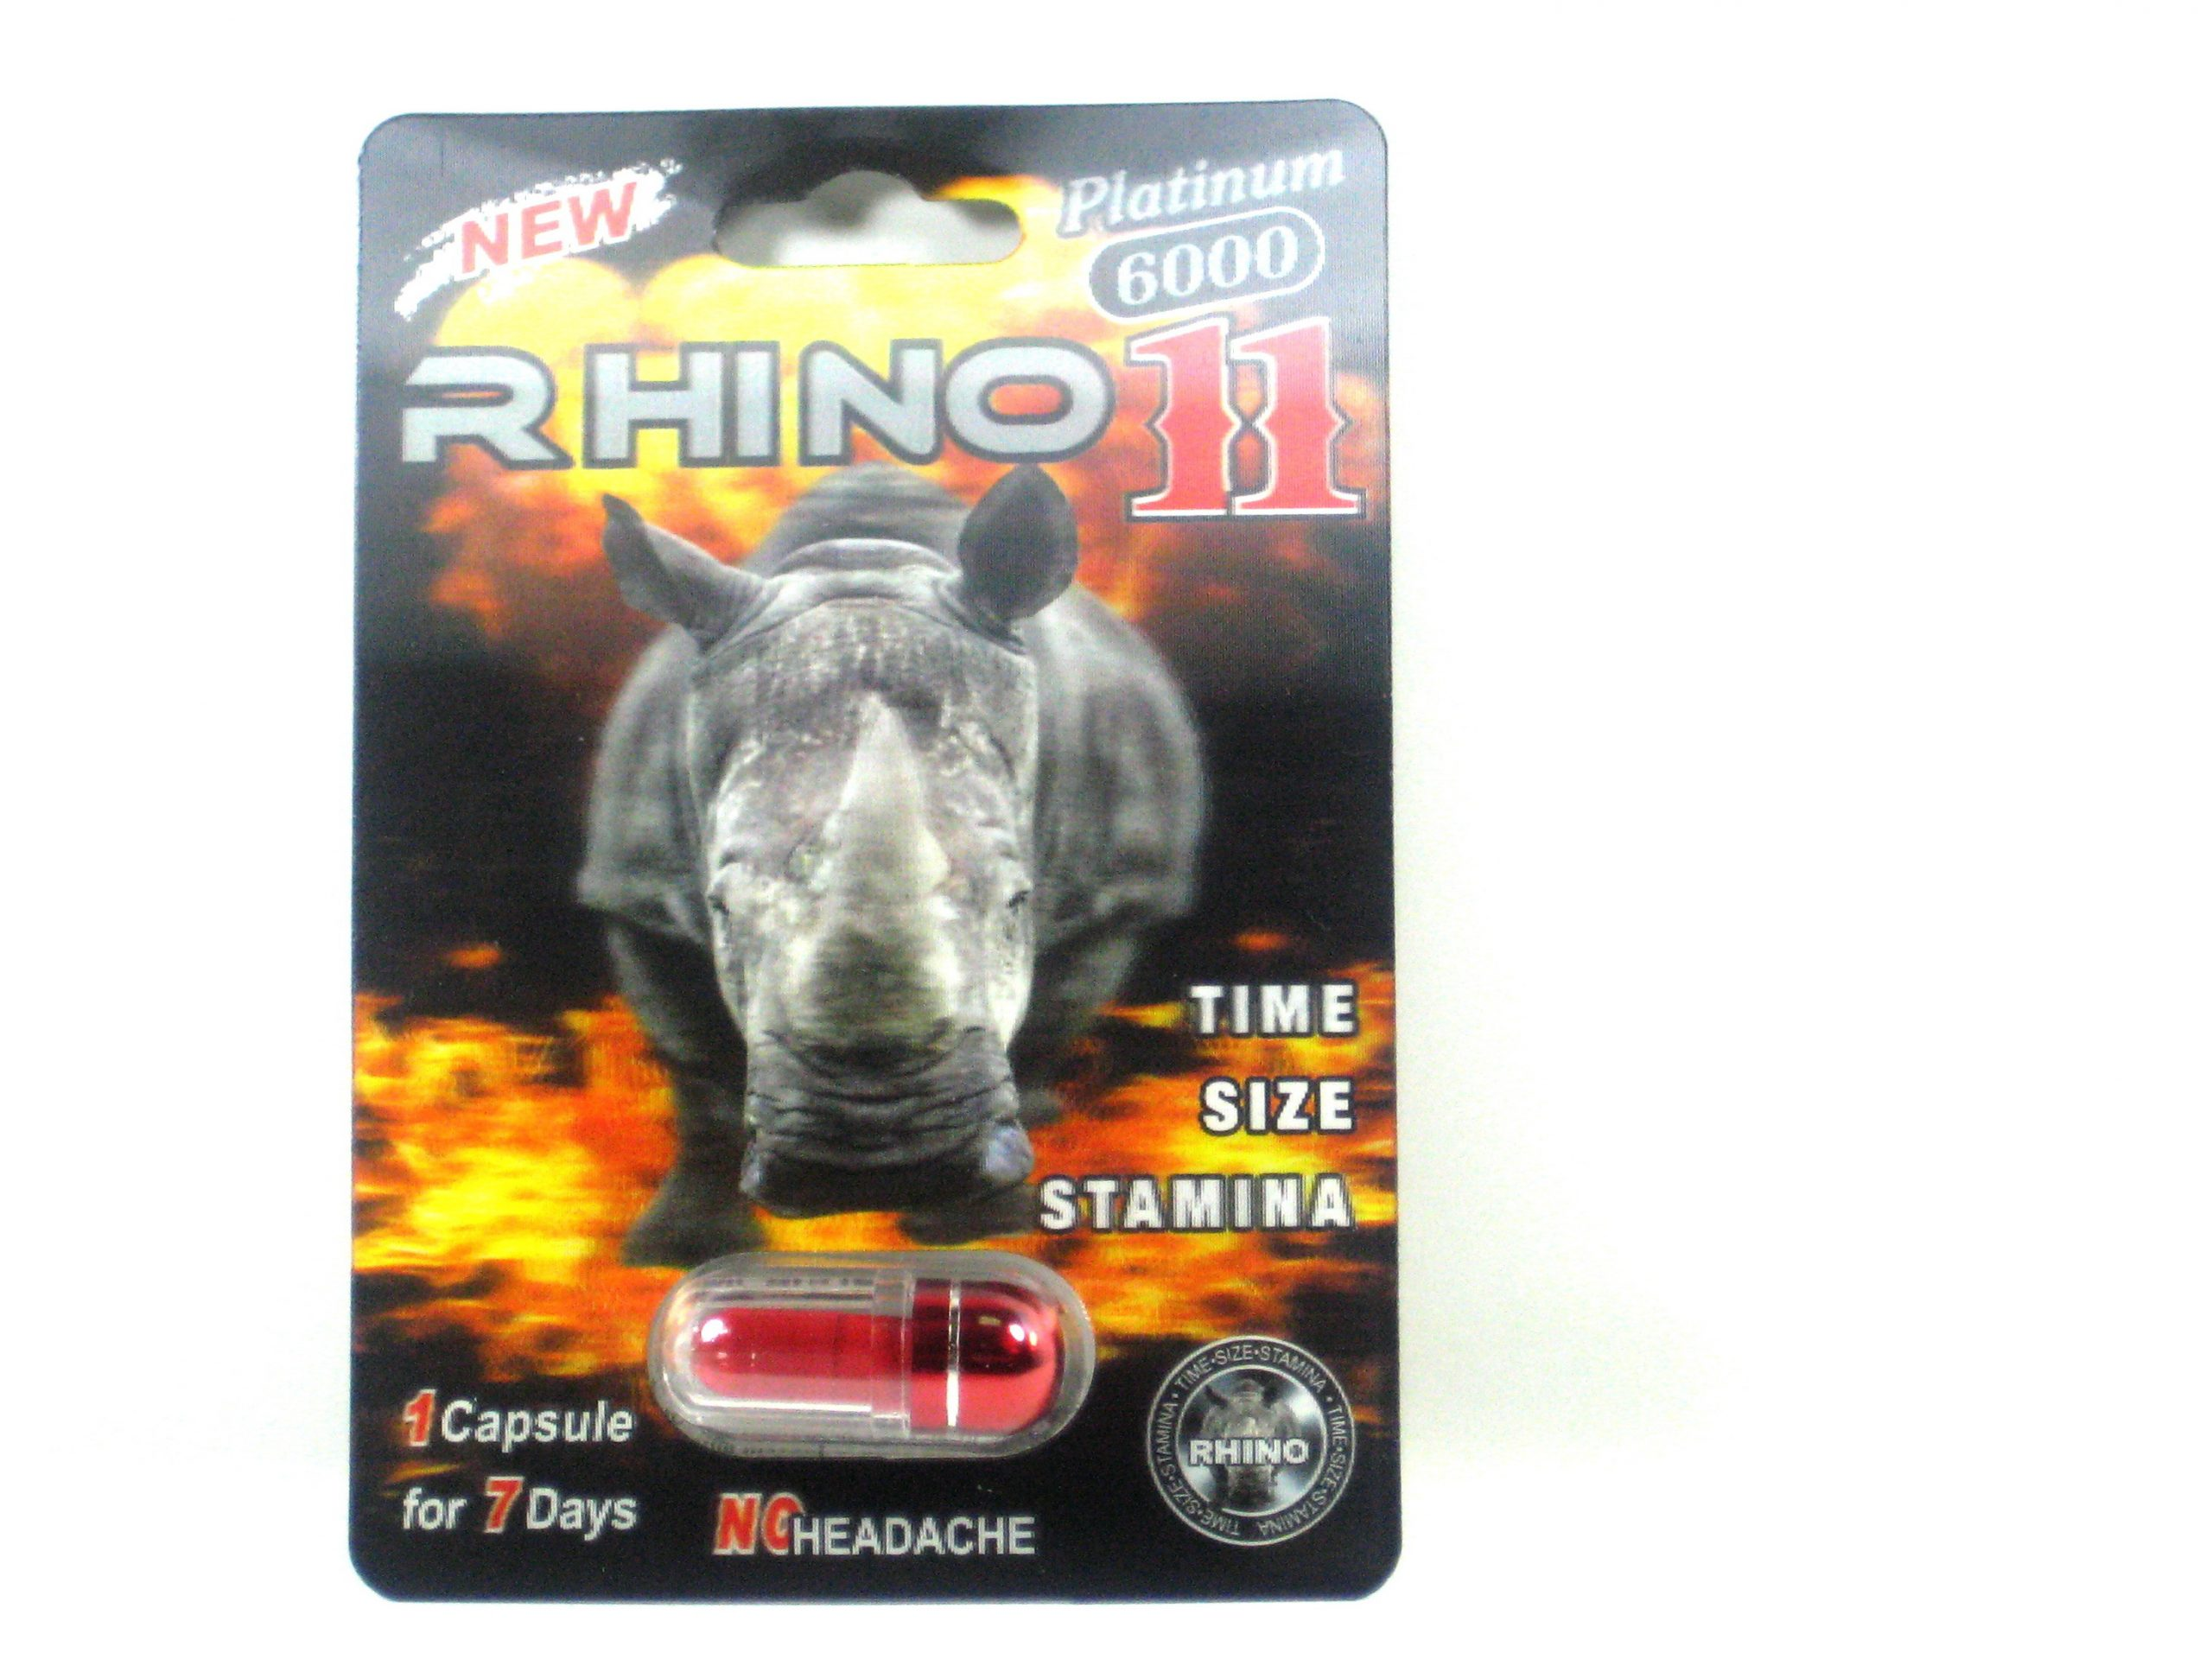 New Rhino 11 Platinum Male Enhancement- 3500mg